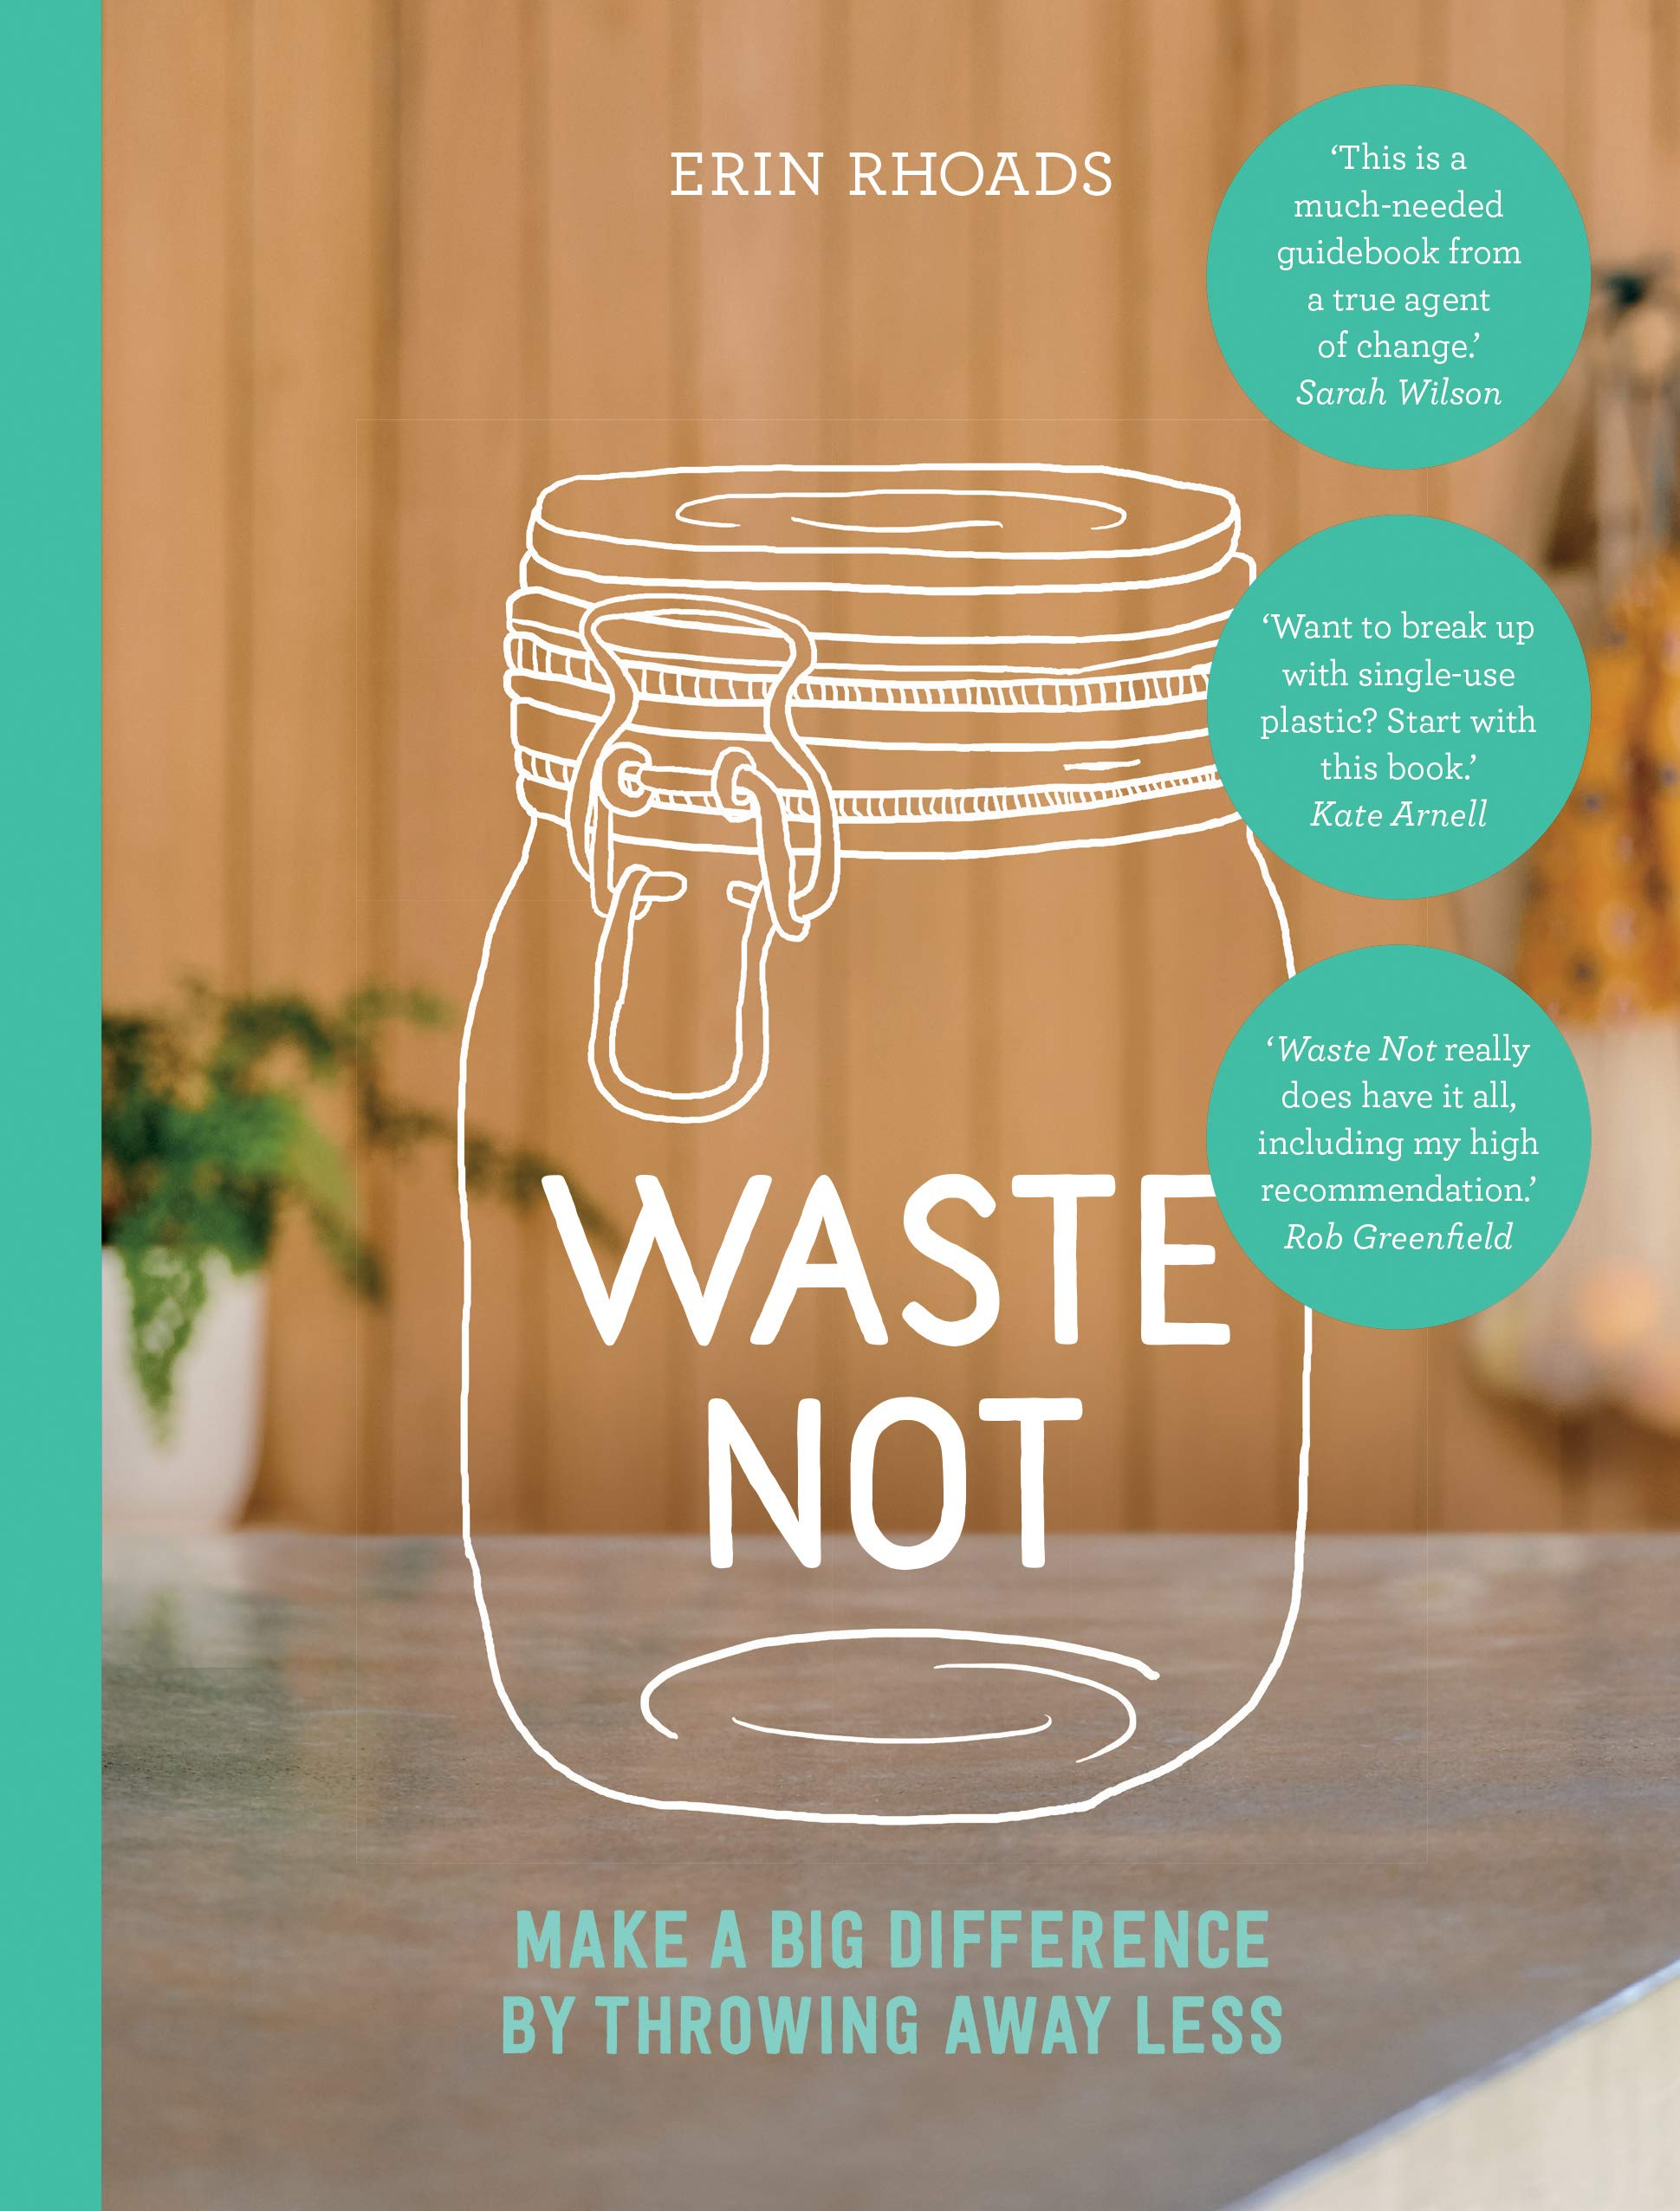 Waste Not - Make a Big Difference by Throwing Away Less by Erin Rhoads